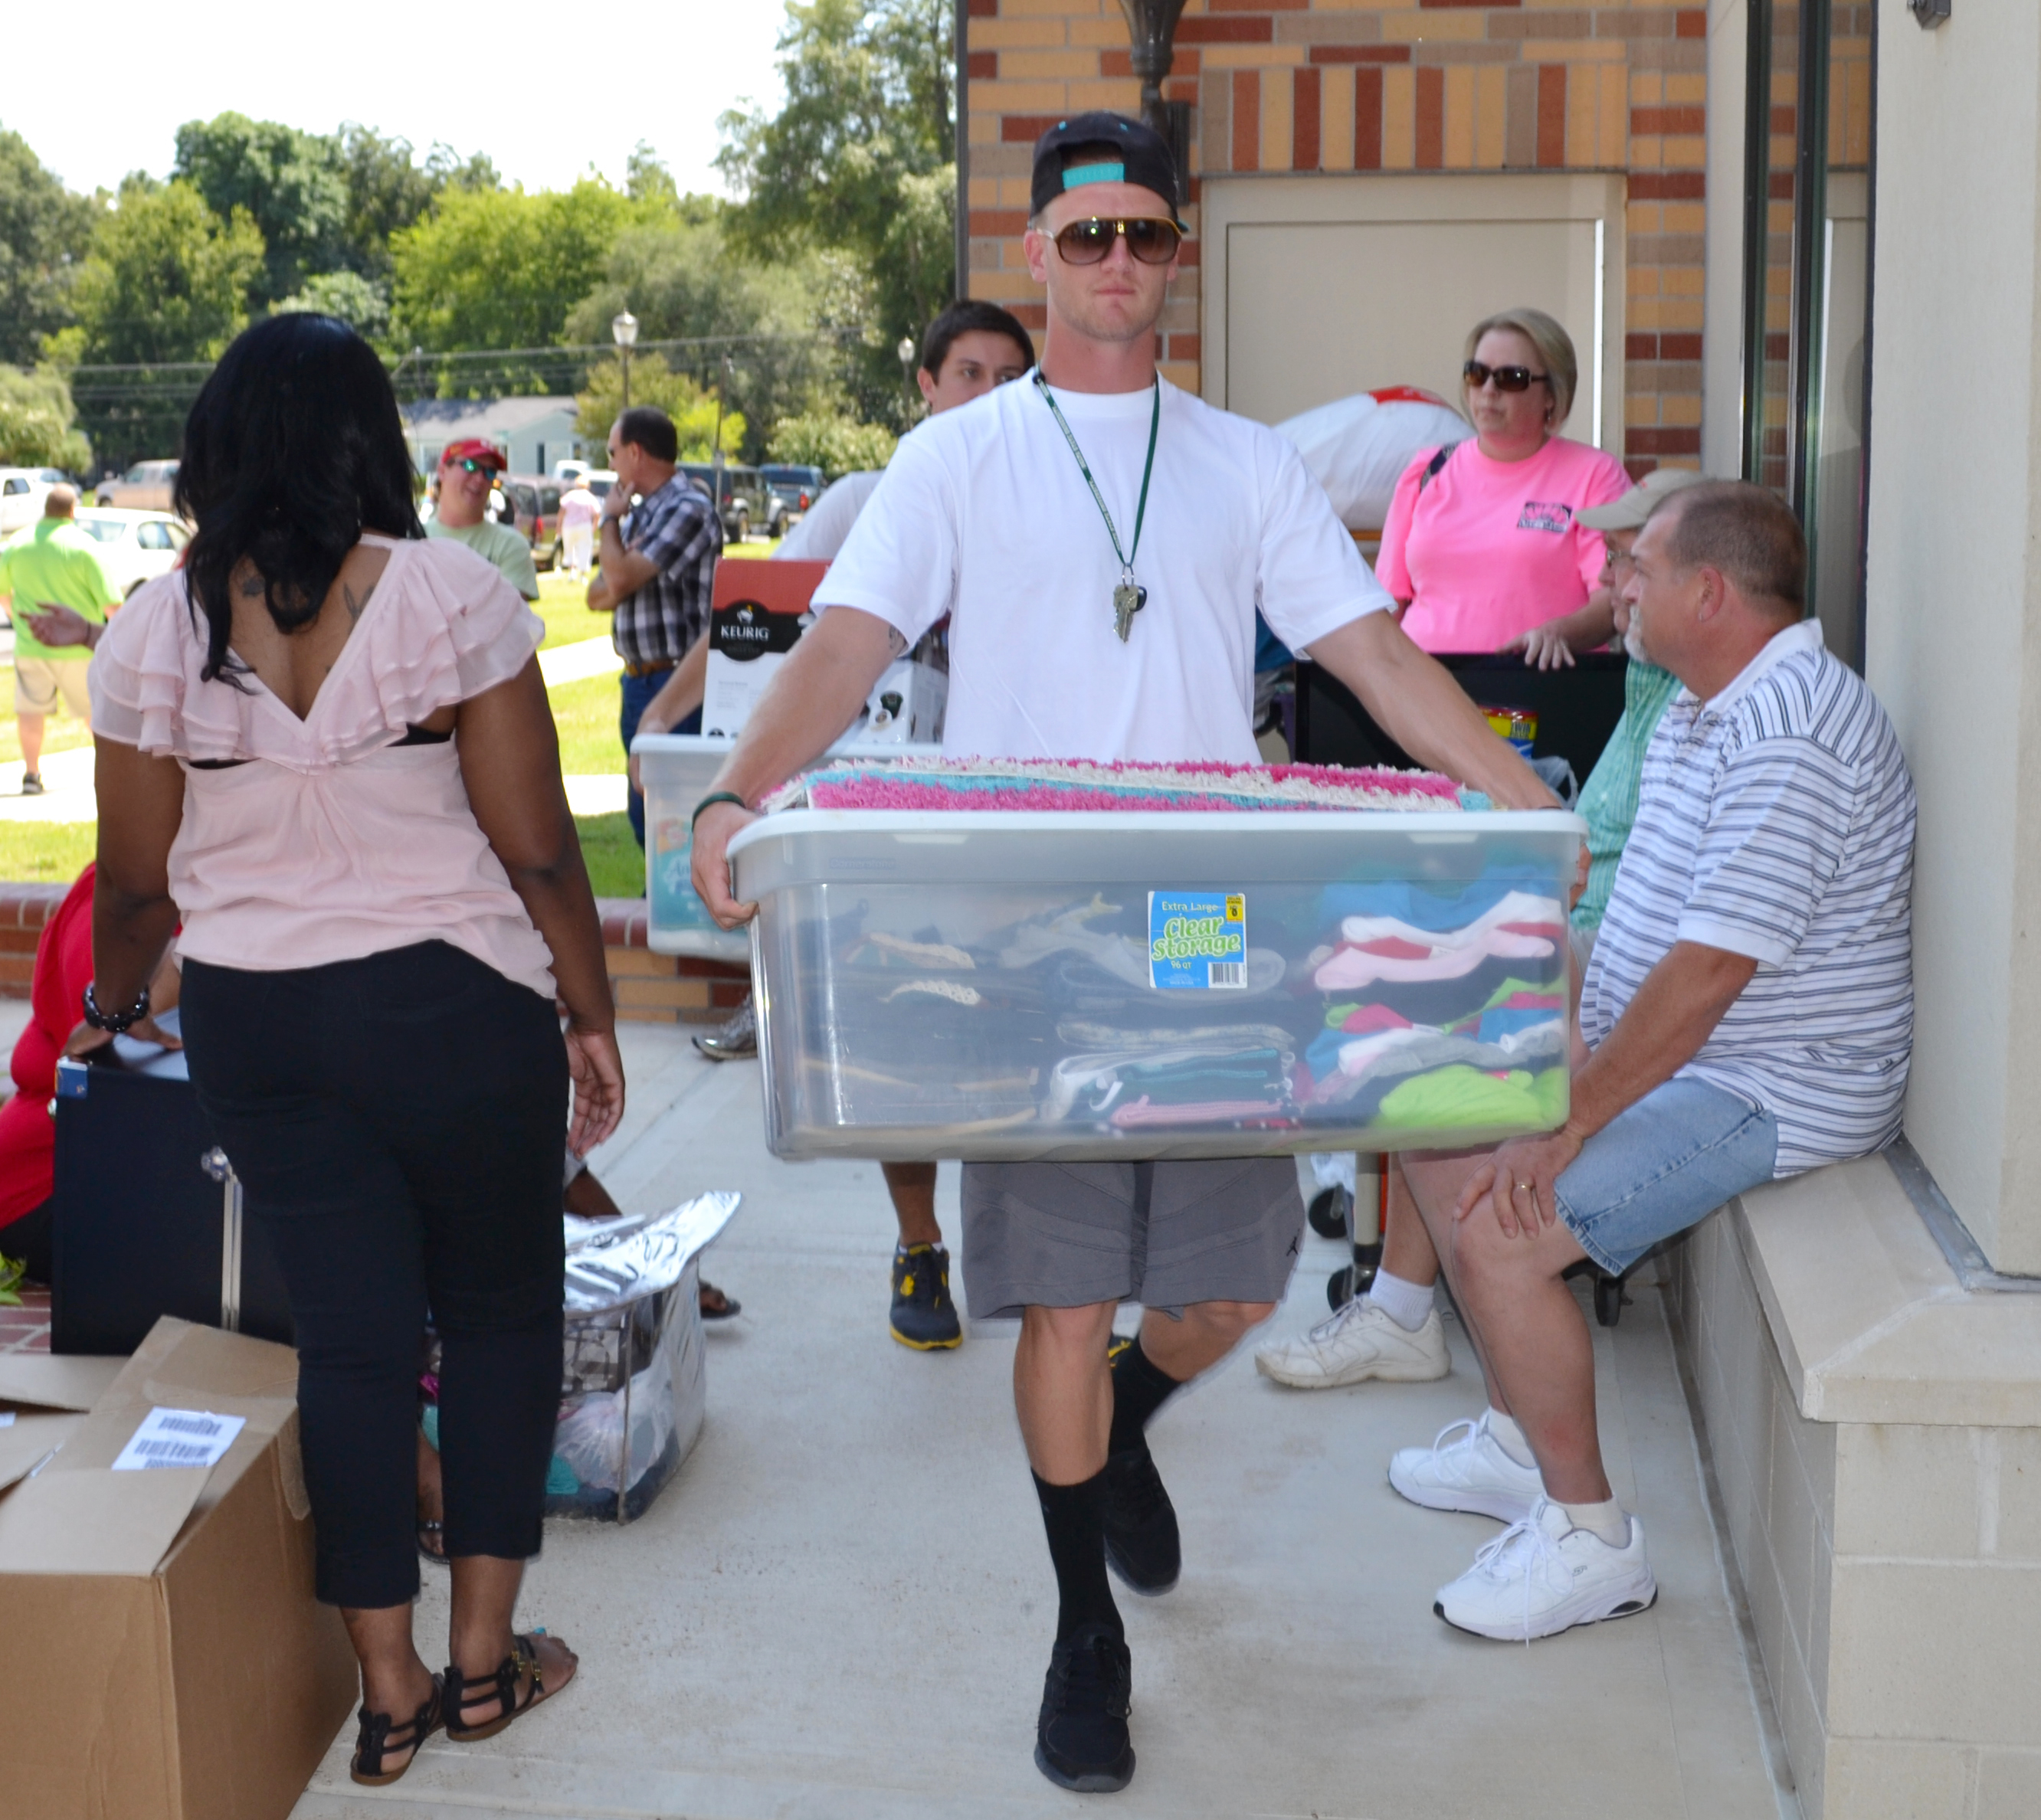 Athletes help carry items in residence halls.